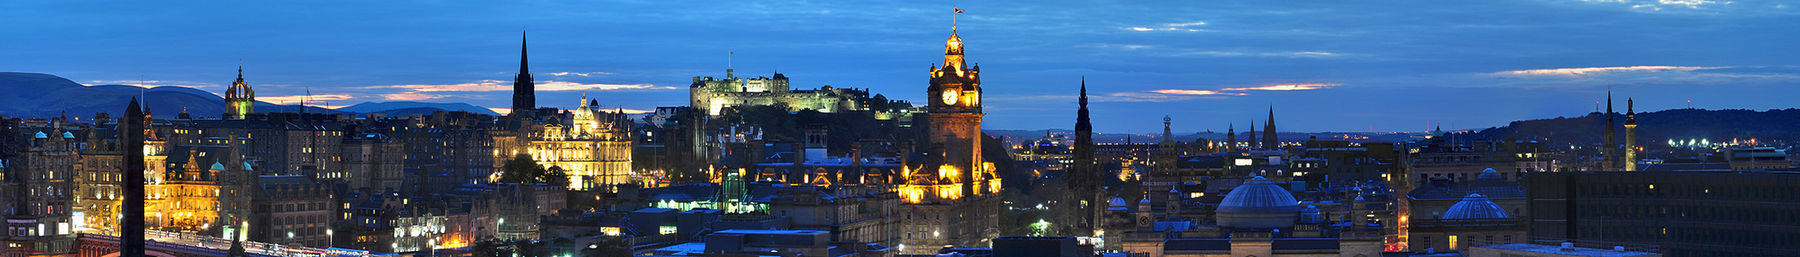 Edinburgh skyline at night